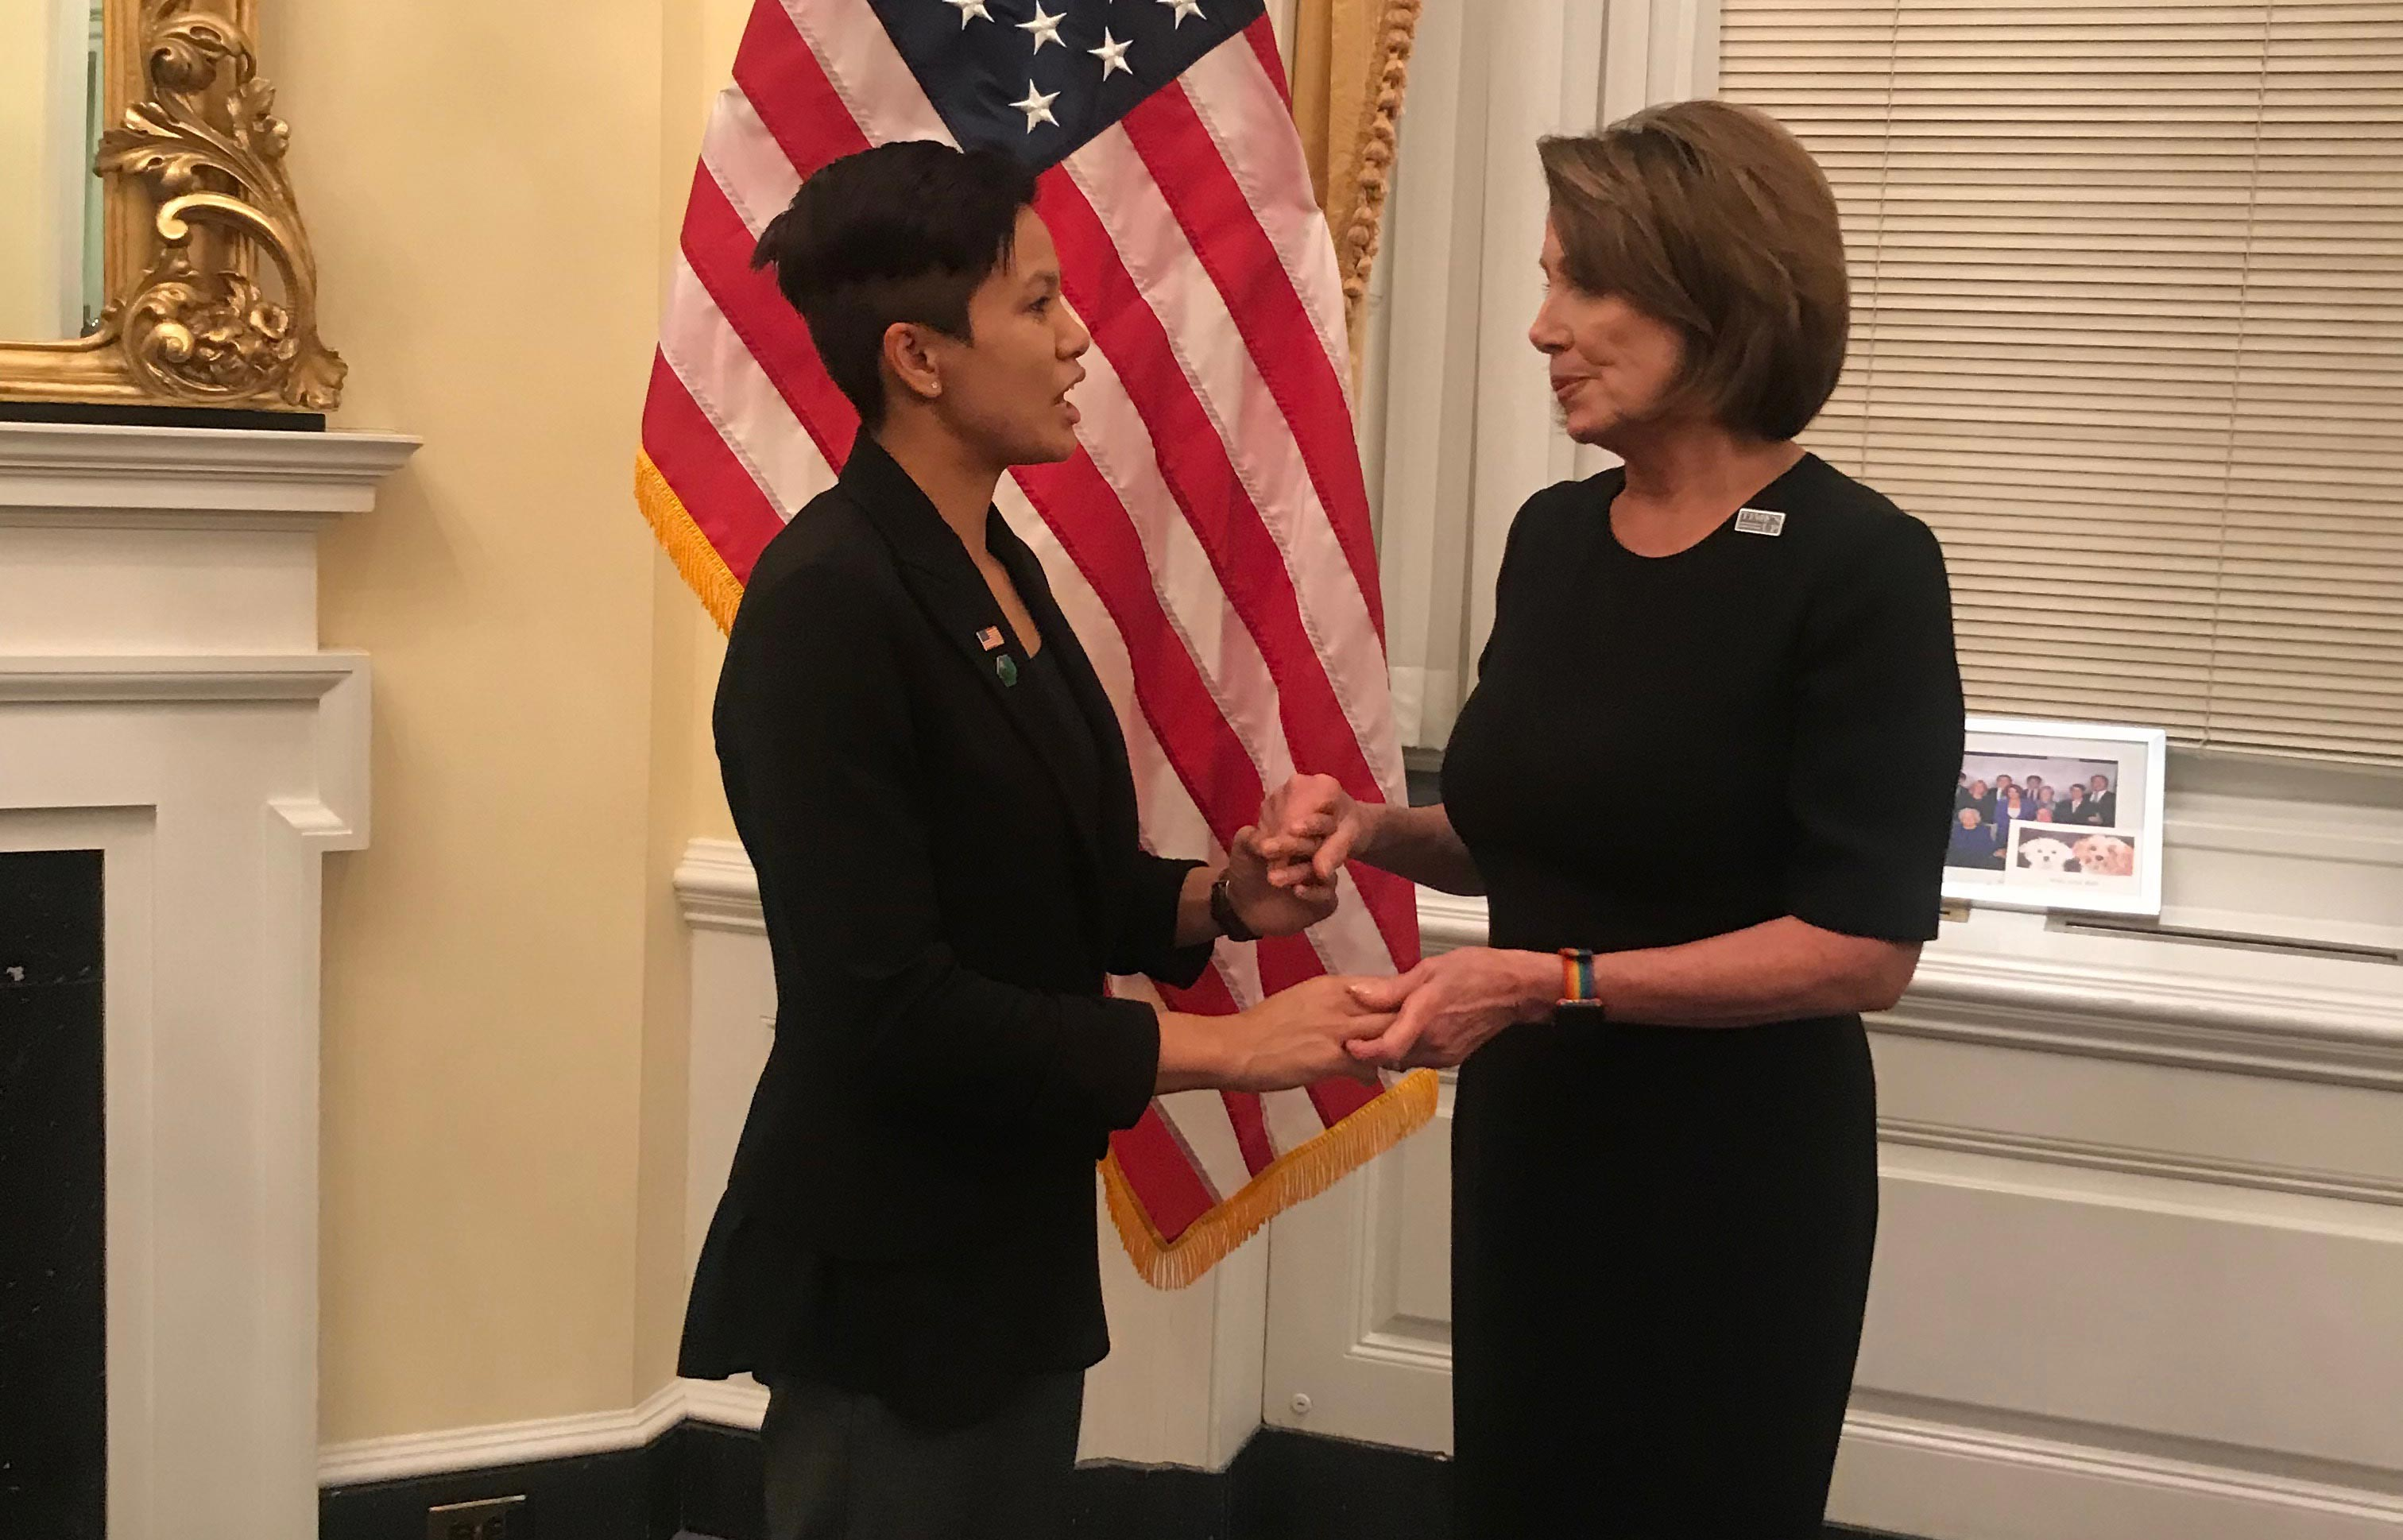 Mary Chan, '17 food and nutrition, meets Democratic Minority Leader Nancy Pelosi before the State of the Union address.